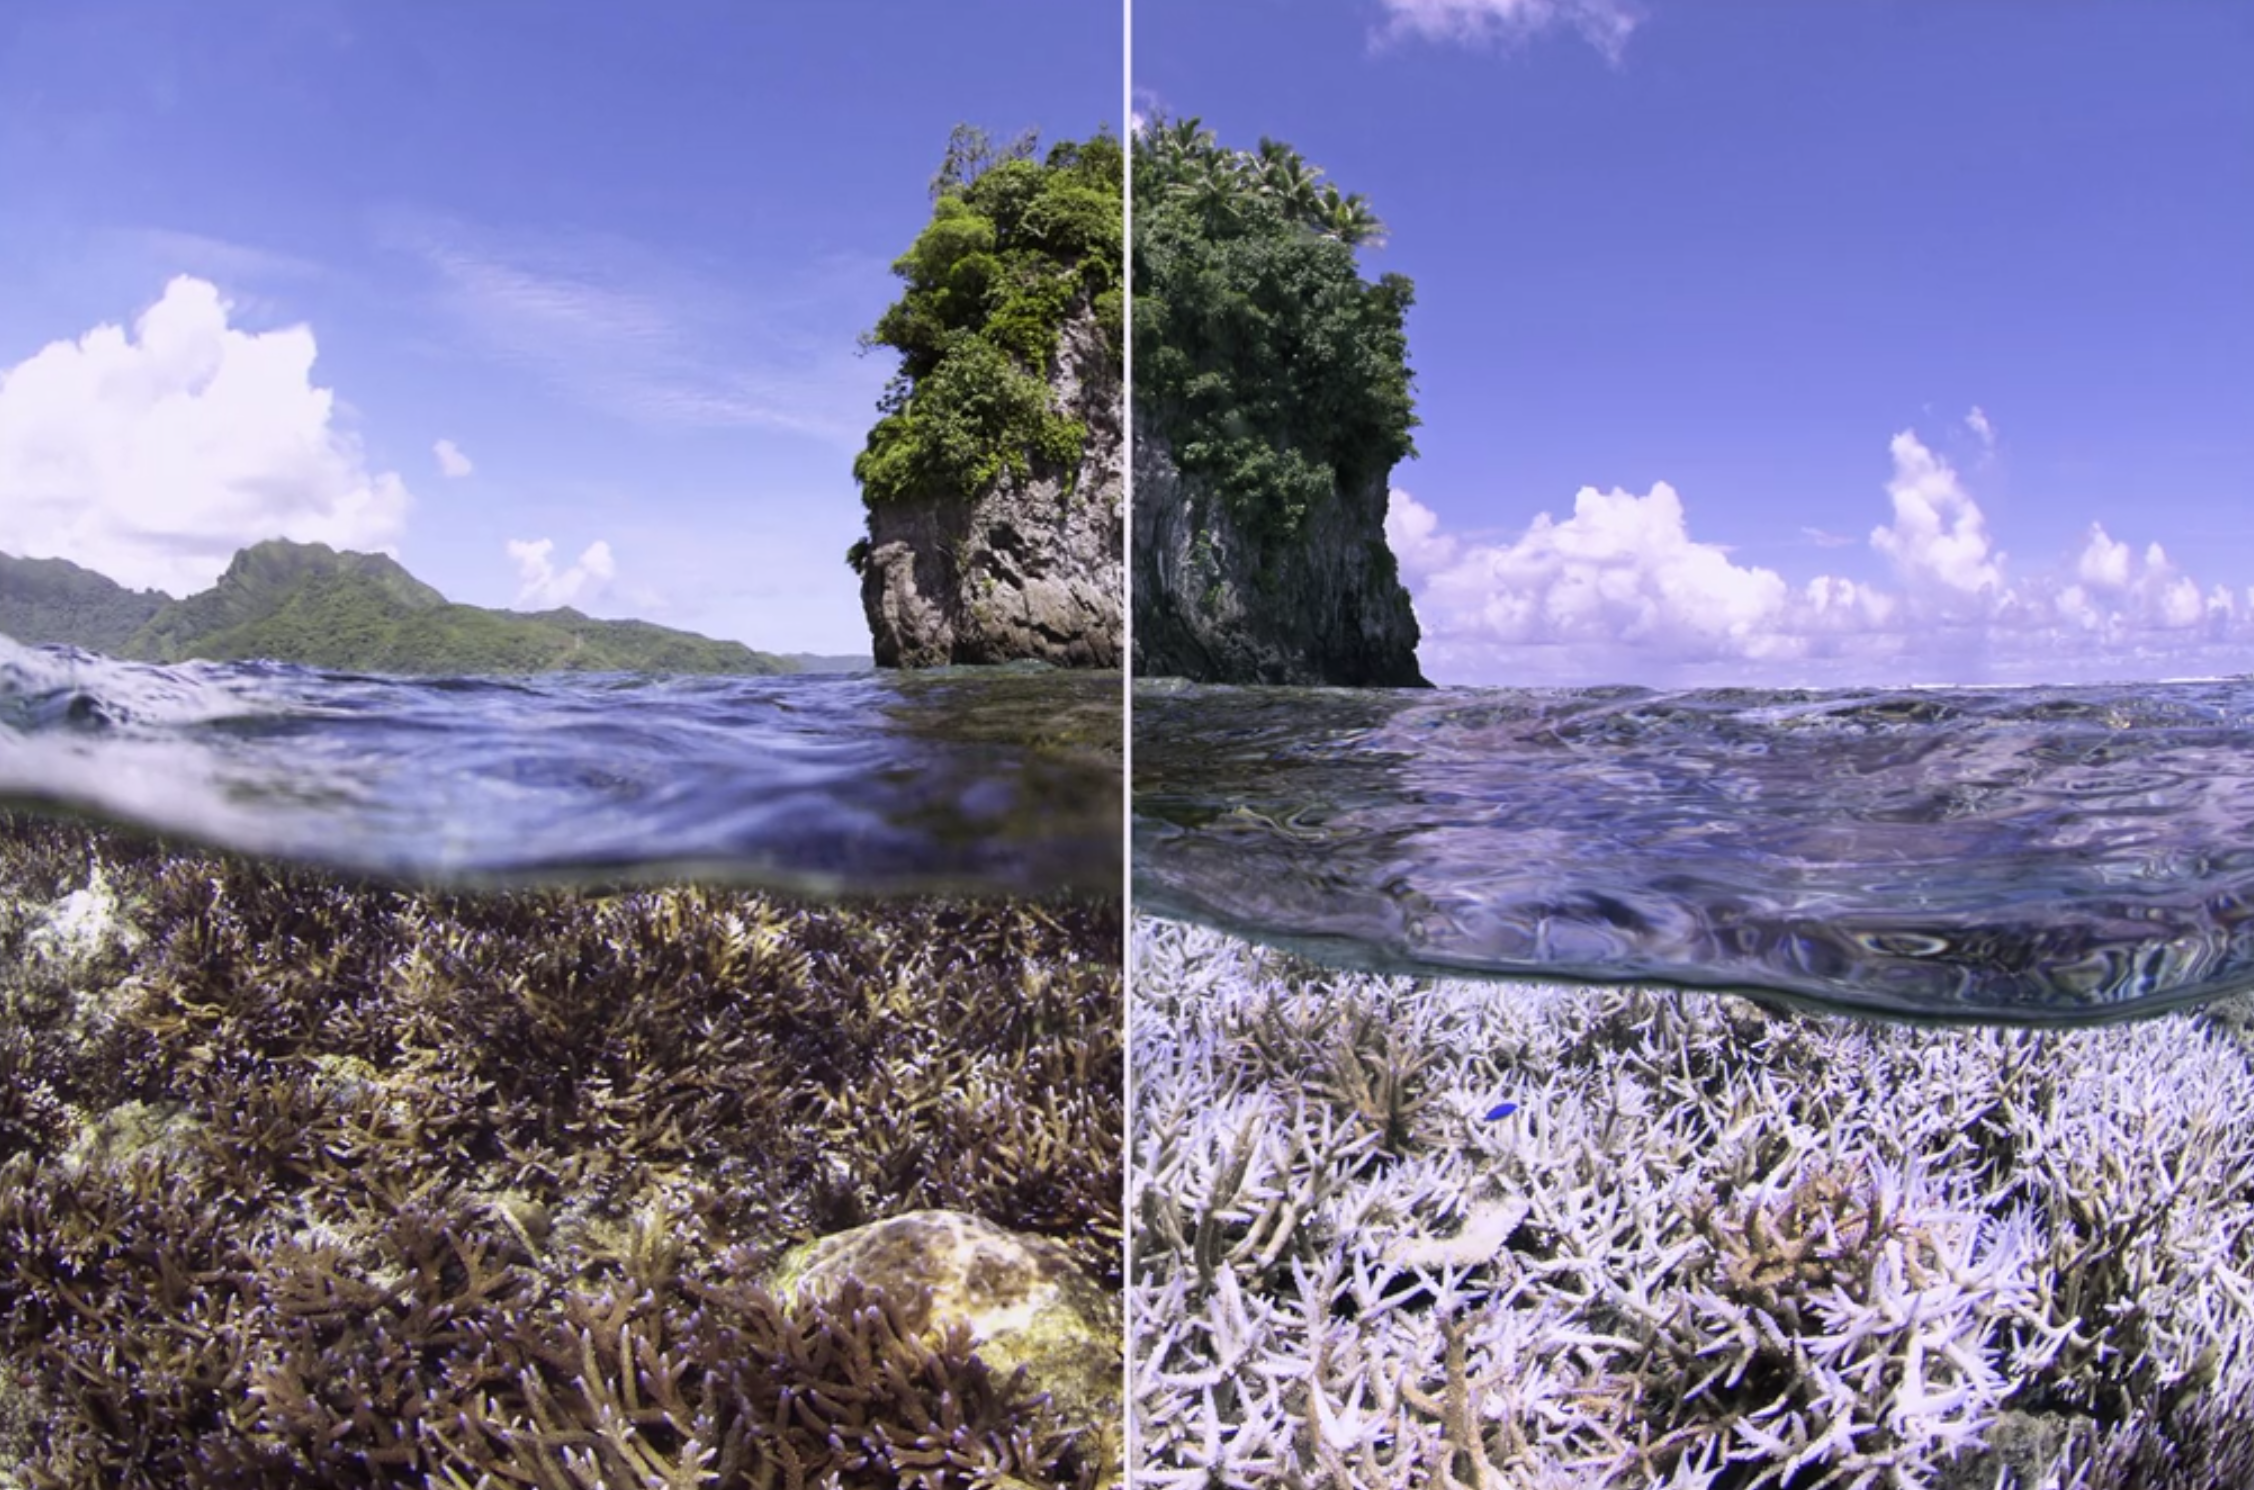 Coral bleaching event captured in climate documentary Chasing Coral